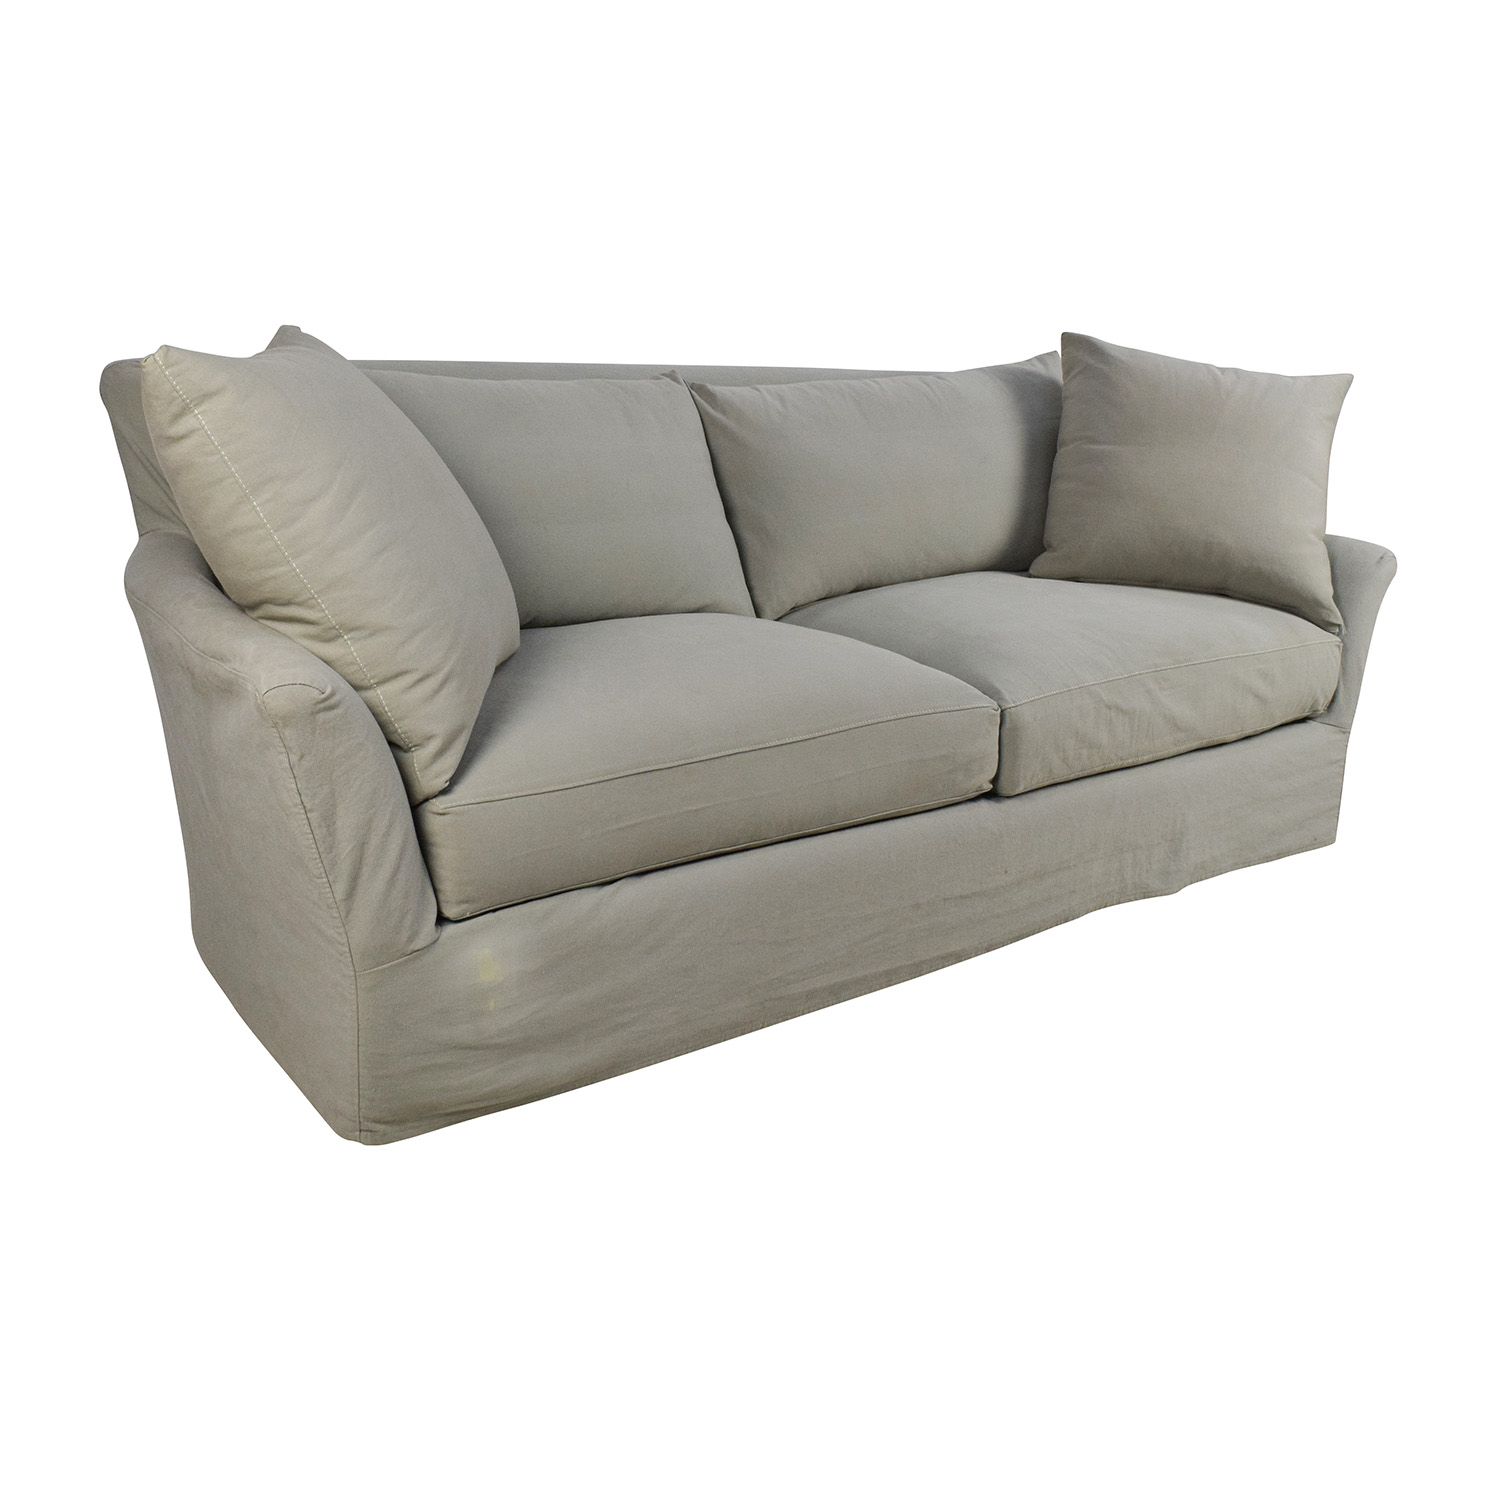 ... Crate And Barrel Crate U0026 Barrel Willow Sage Green Sofa Second ...